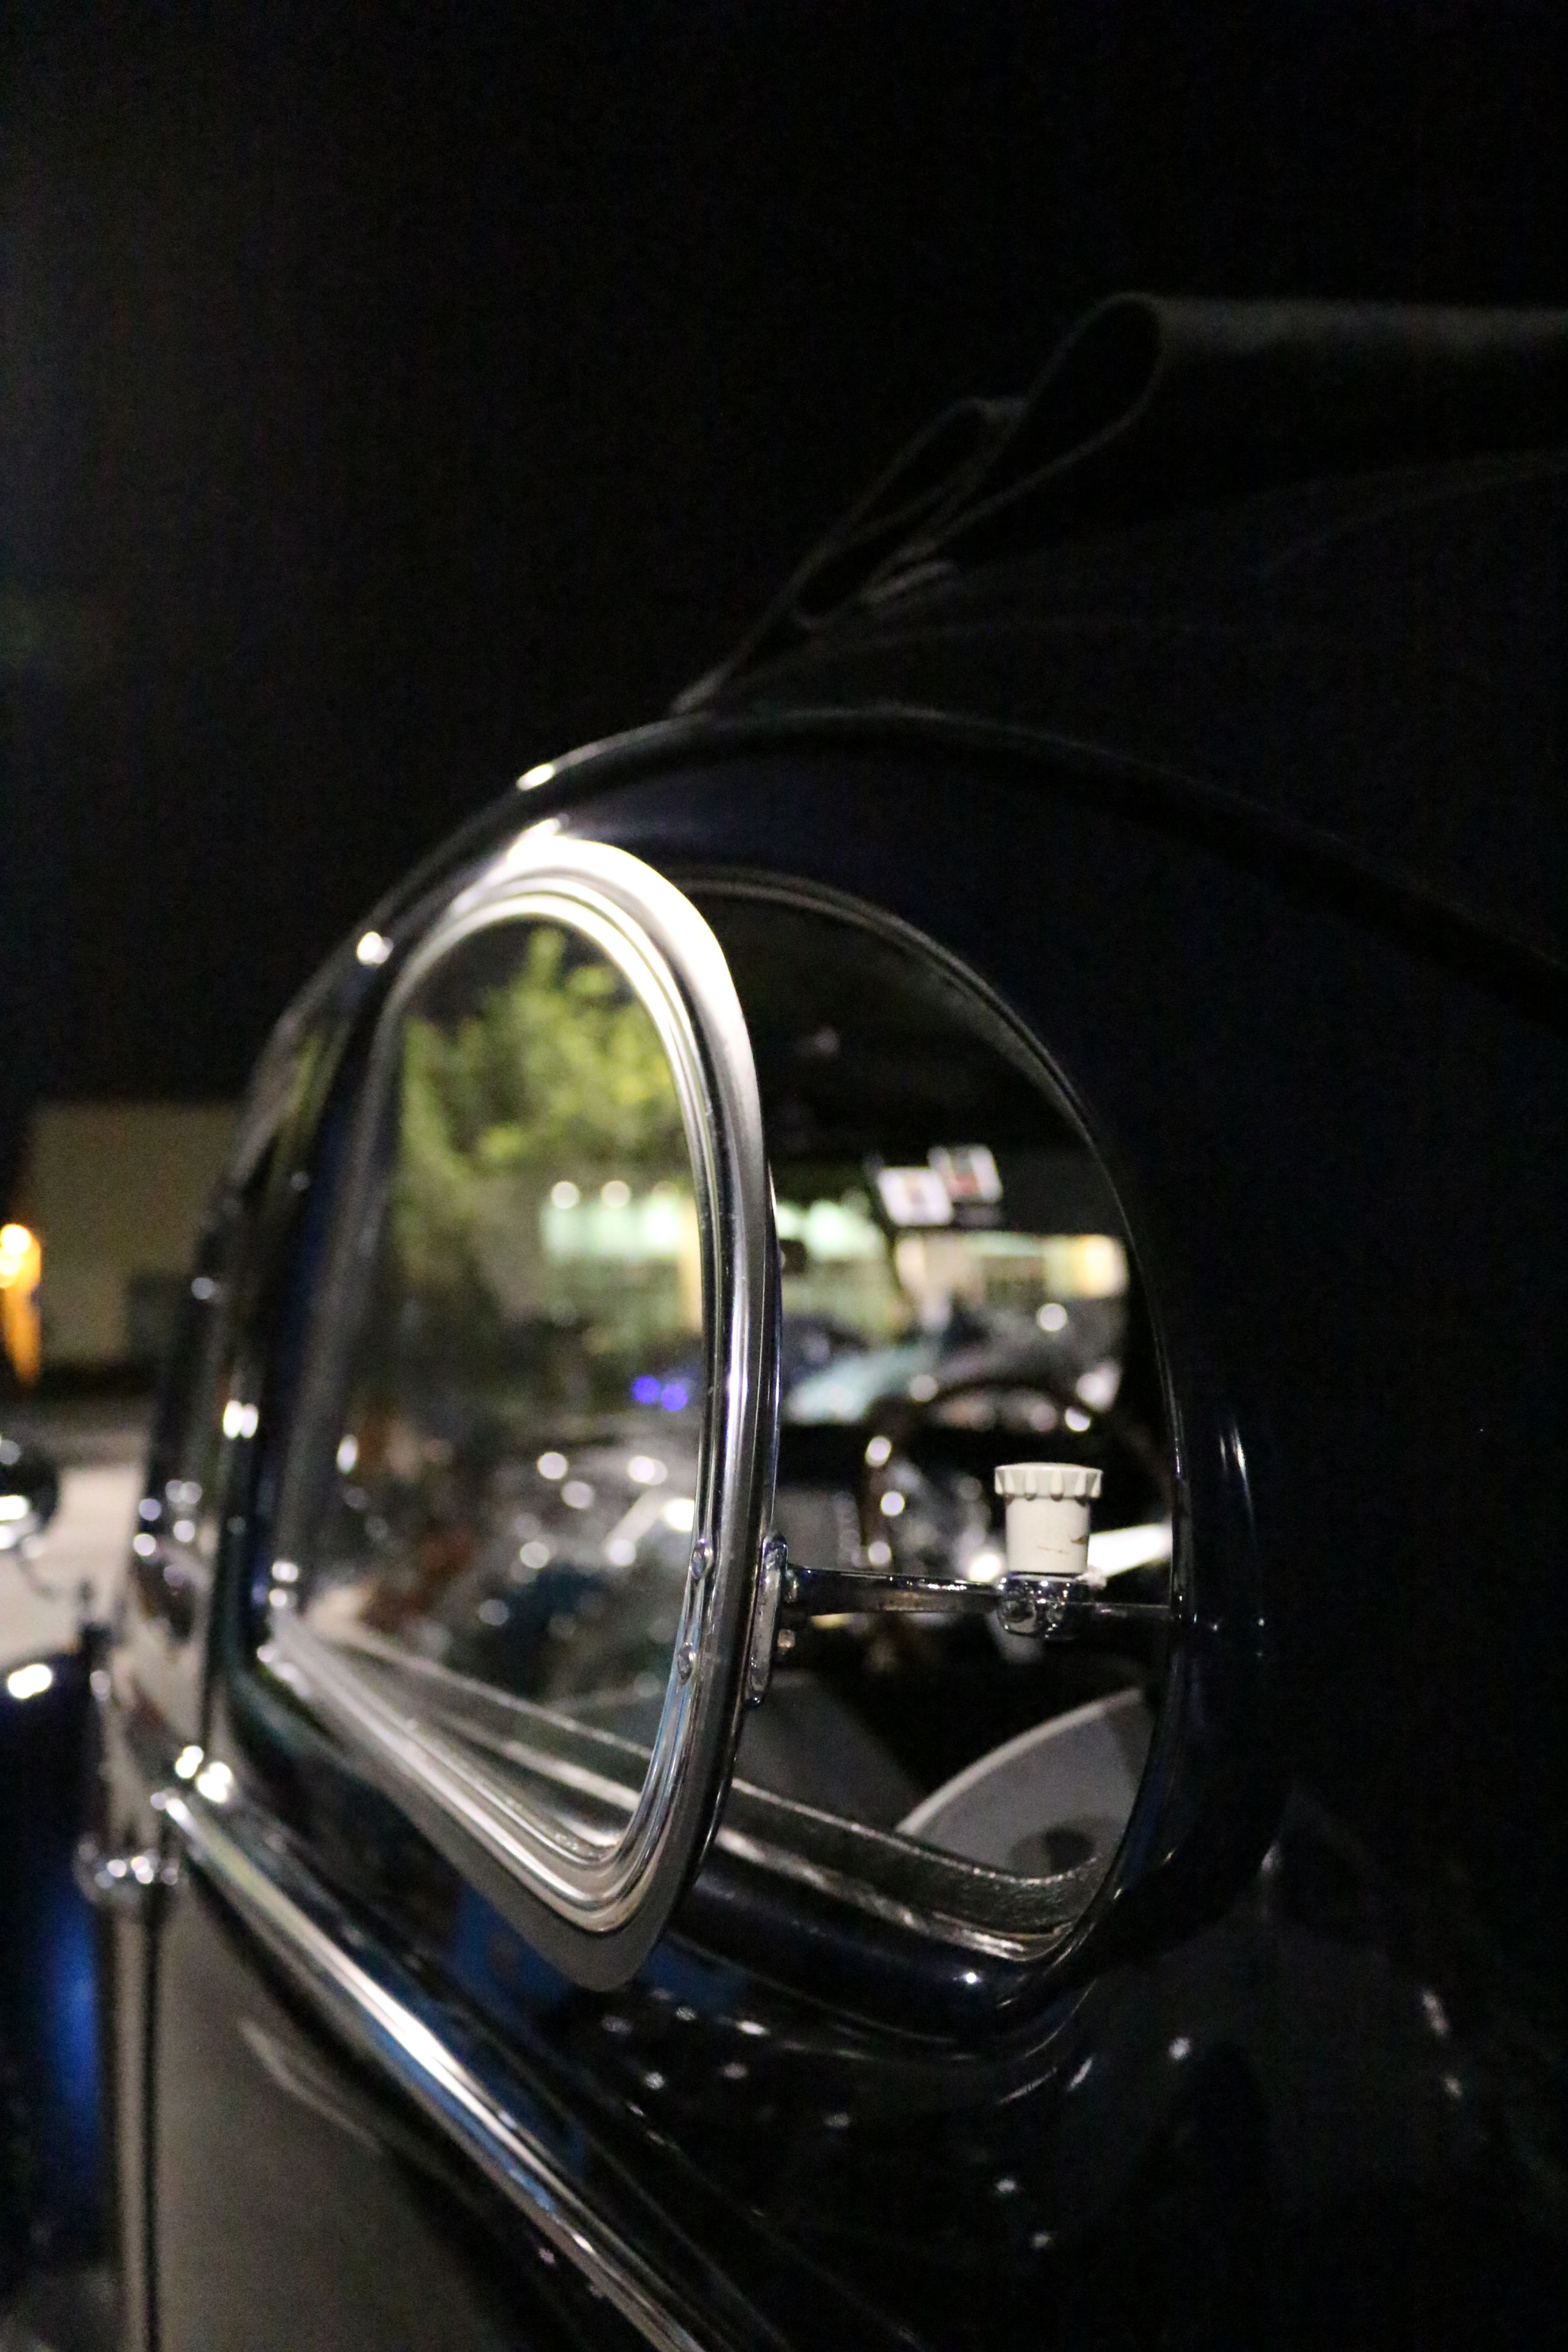 close-up, indoors, reflection, glass - material, metal, focus on foreground, transparent, shiny, part of, old-fashioned, technology, no people, selective focus, single object, retro styled, still life, lighting equipment, detail, car, cropped